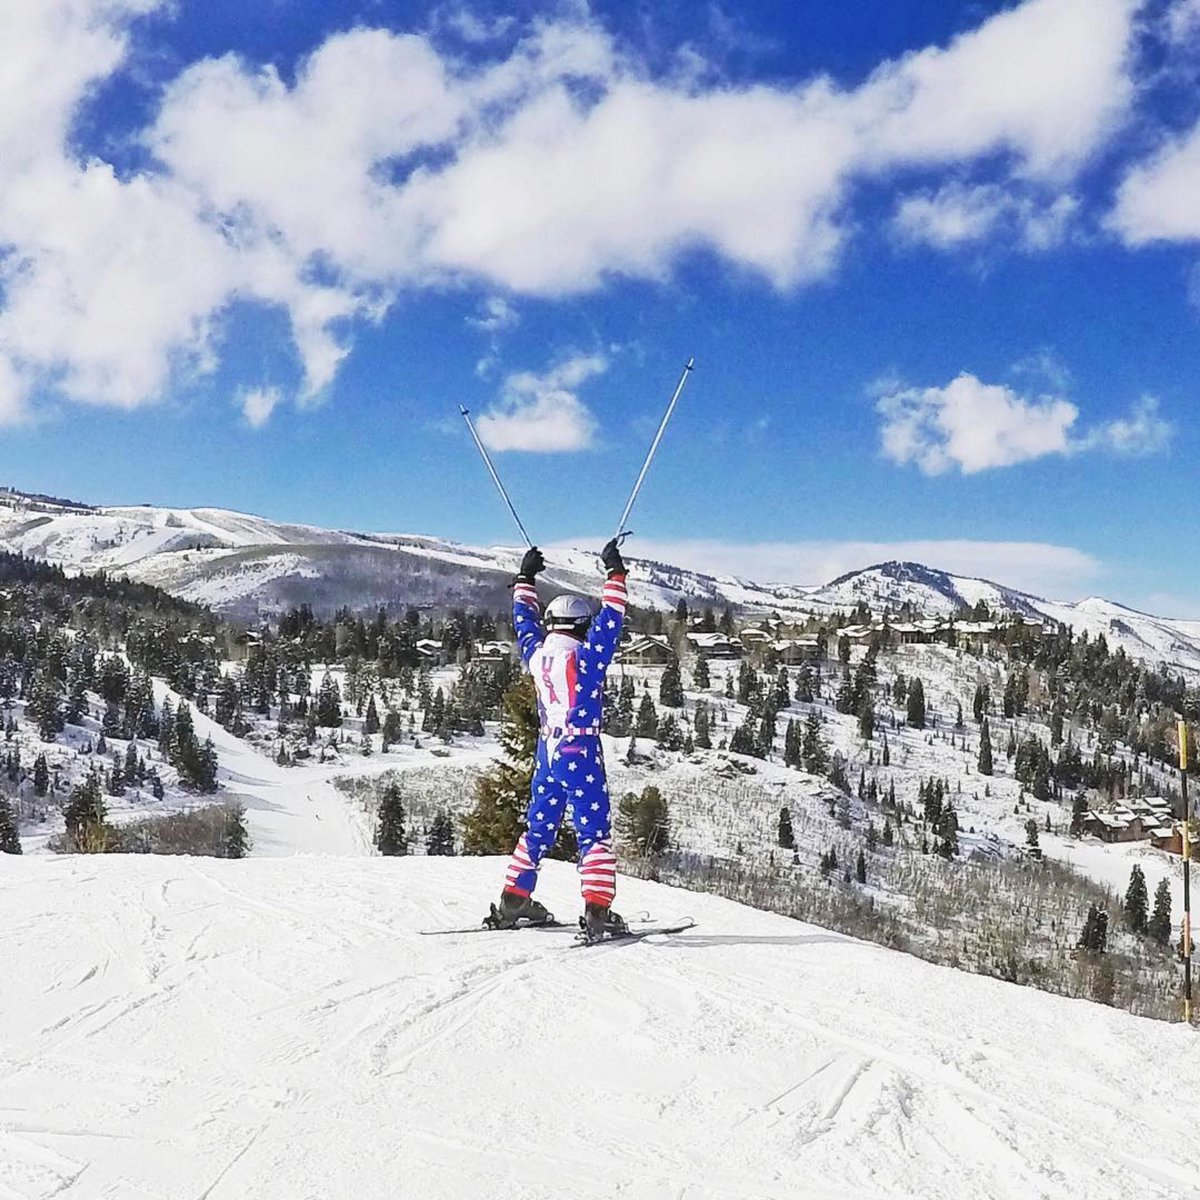 🇺🇸 Happy Independence Day from #DeerValley. | 📷: justin_karn https://t.co/5ZIpdSbdrC